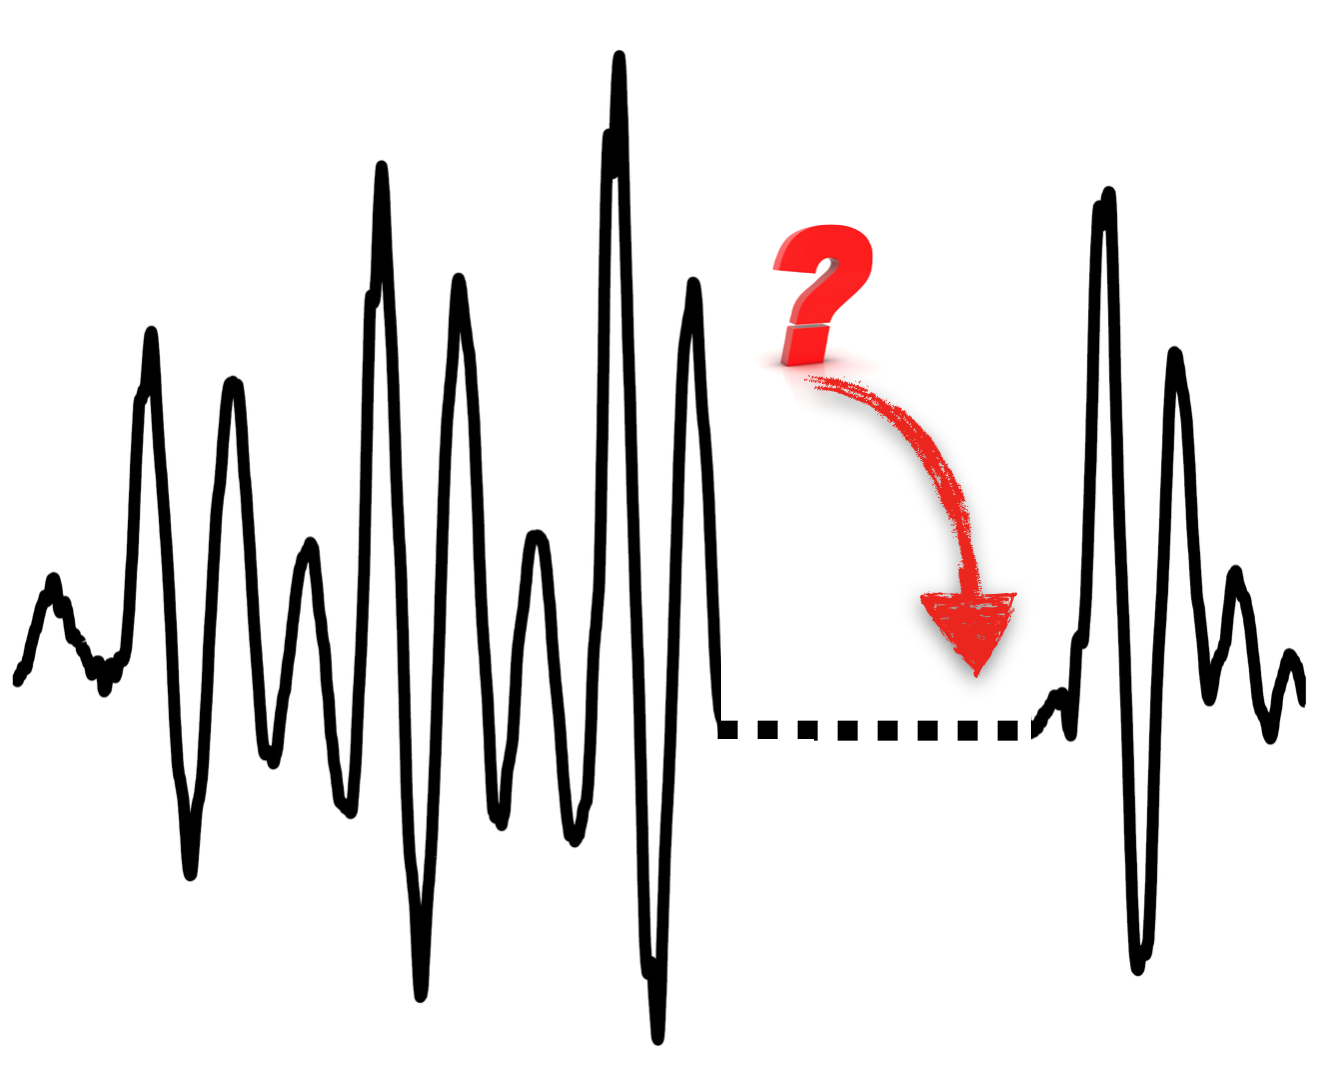 Generating Digits and Sounds with Artificial Neural Nets